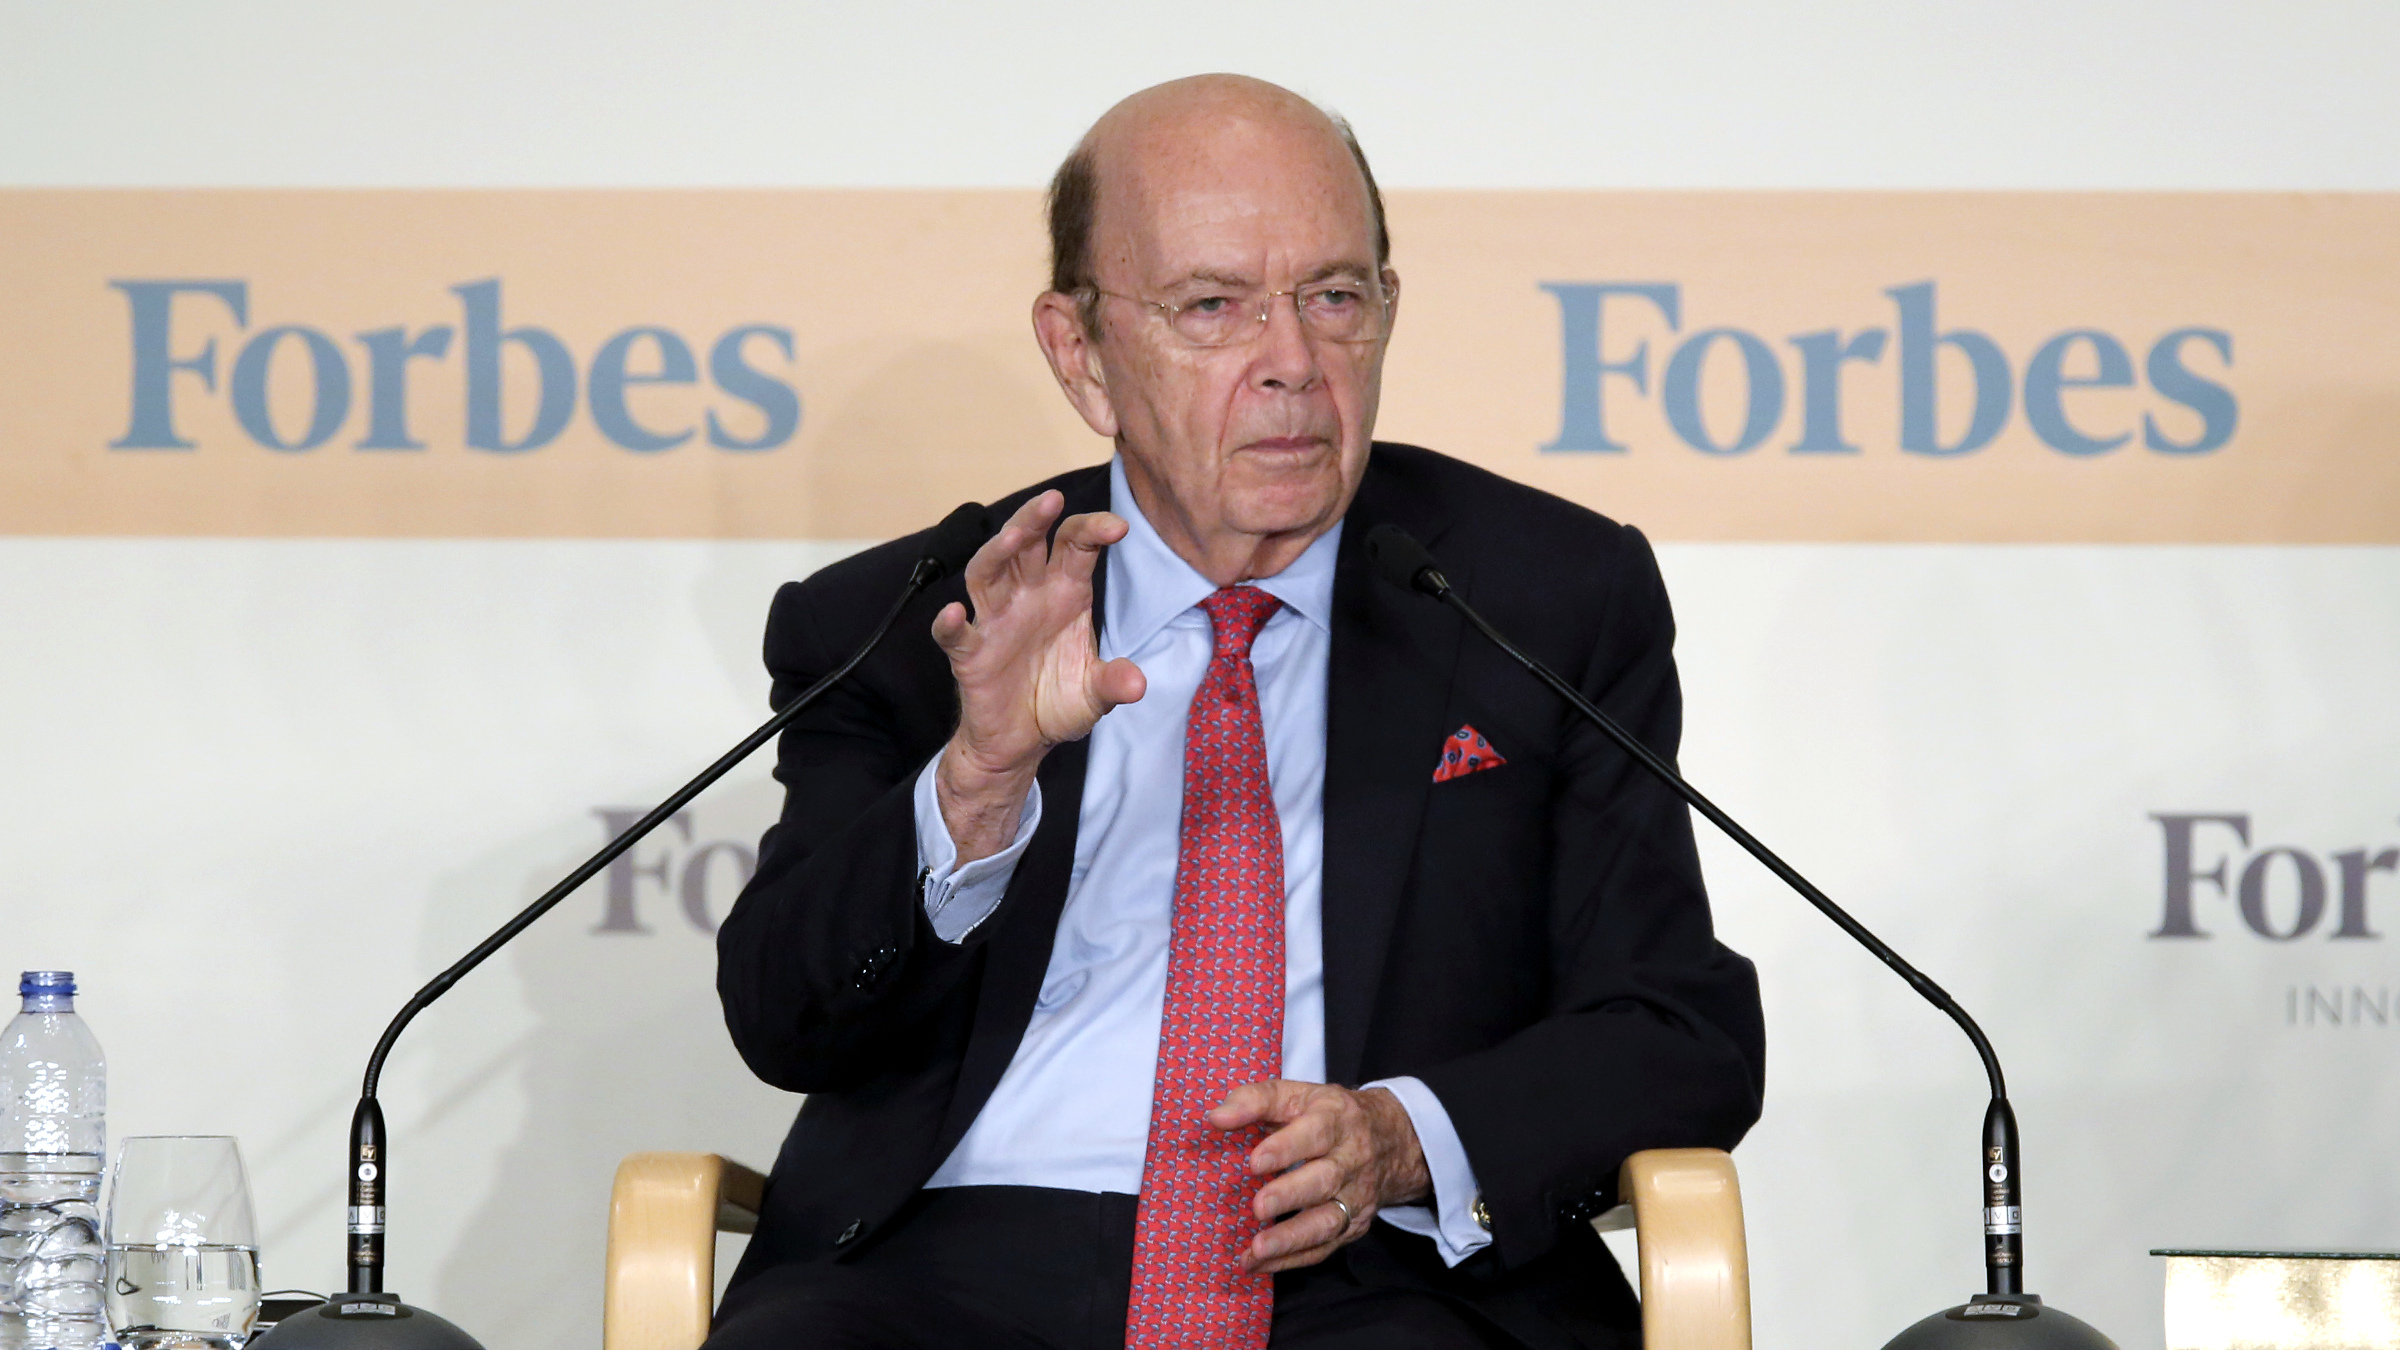 U.S. Secretary of Commerce Wilbur Ross attends the Forbes Global CEO Conference in Hong Kong, Tuesday, Sept. 26, 2017.